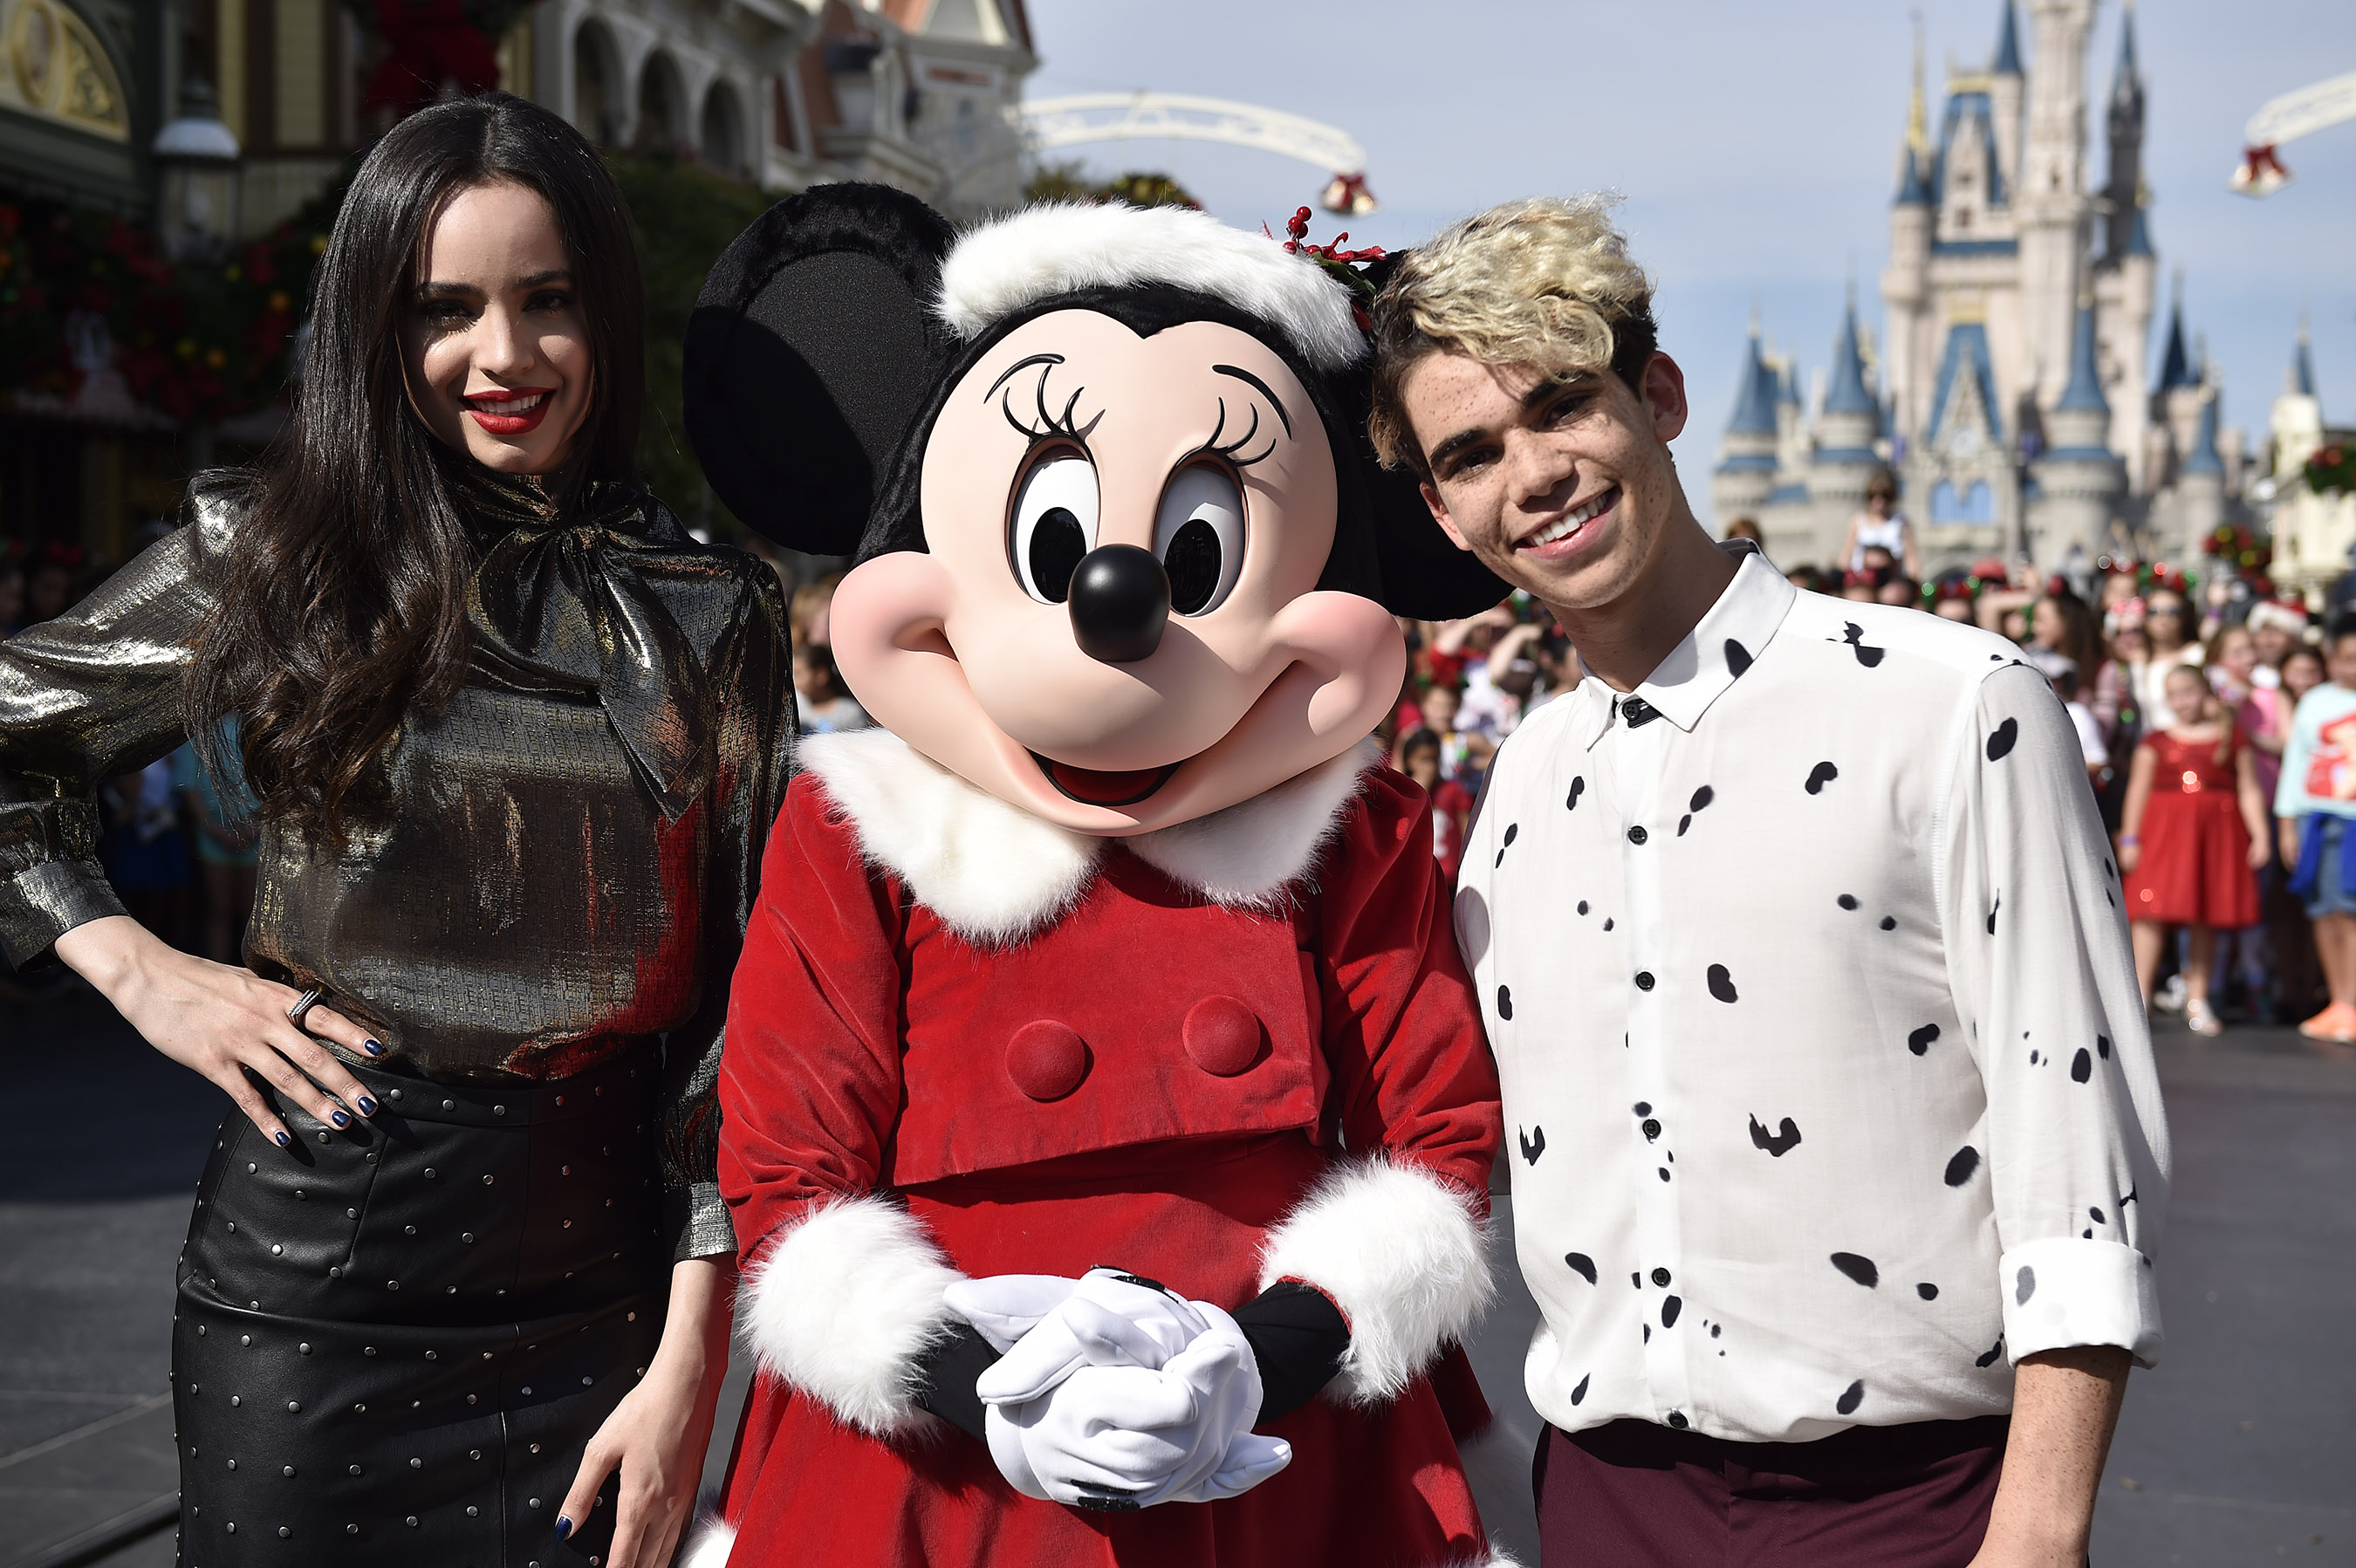 Images From Disney Parks Presents A Descendants Magical Holiday